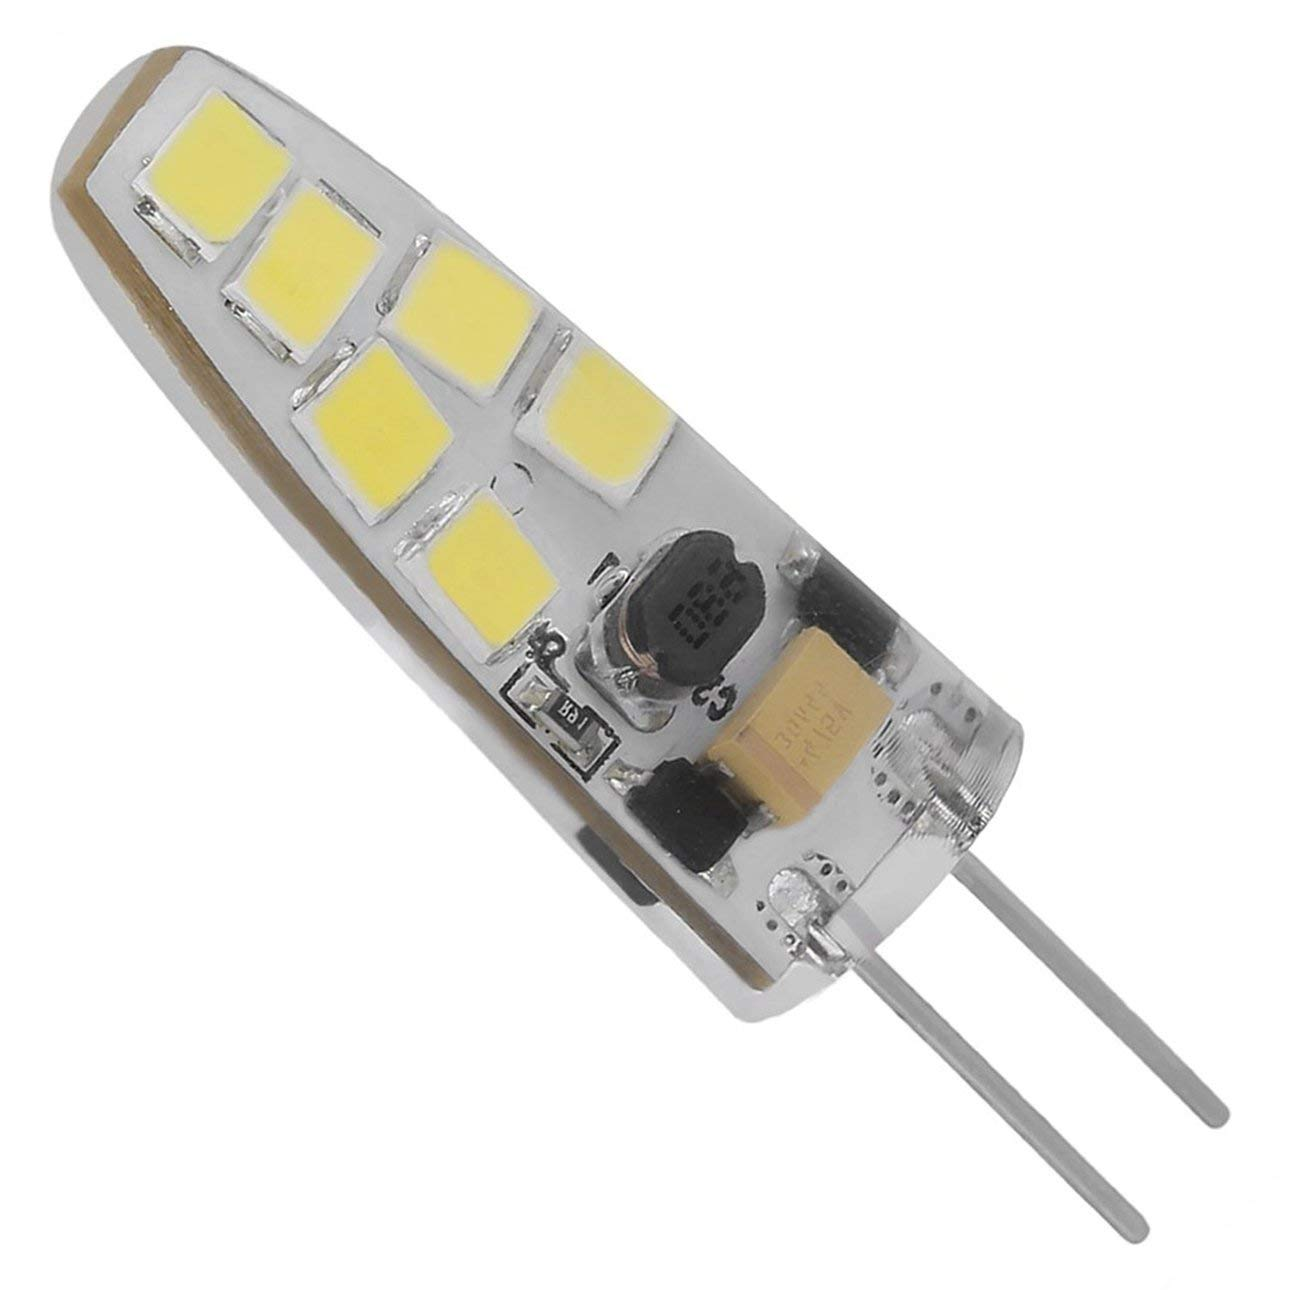 Liobaba Mini No Dimmable G4 LED Lamp With 12LEDs COB 7W AC/DC 12V LED Light 360 Beam Angle Chandelier Replace Halogen Lamps